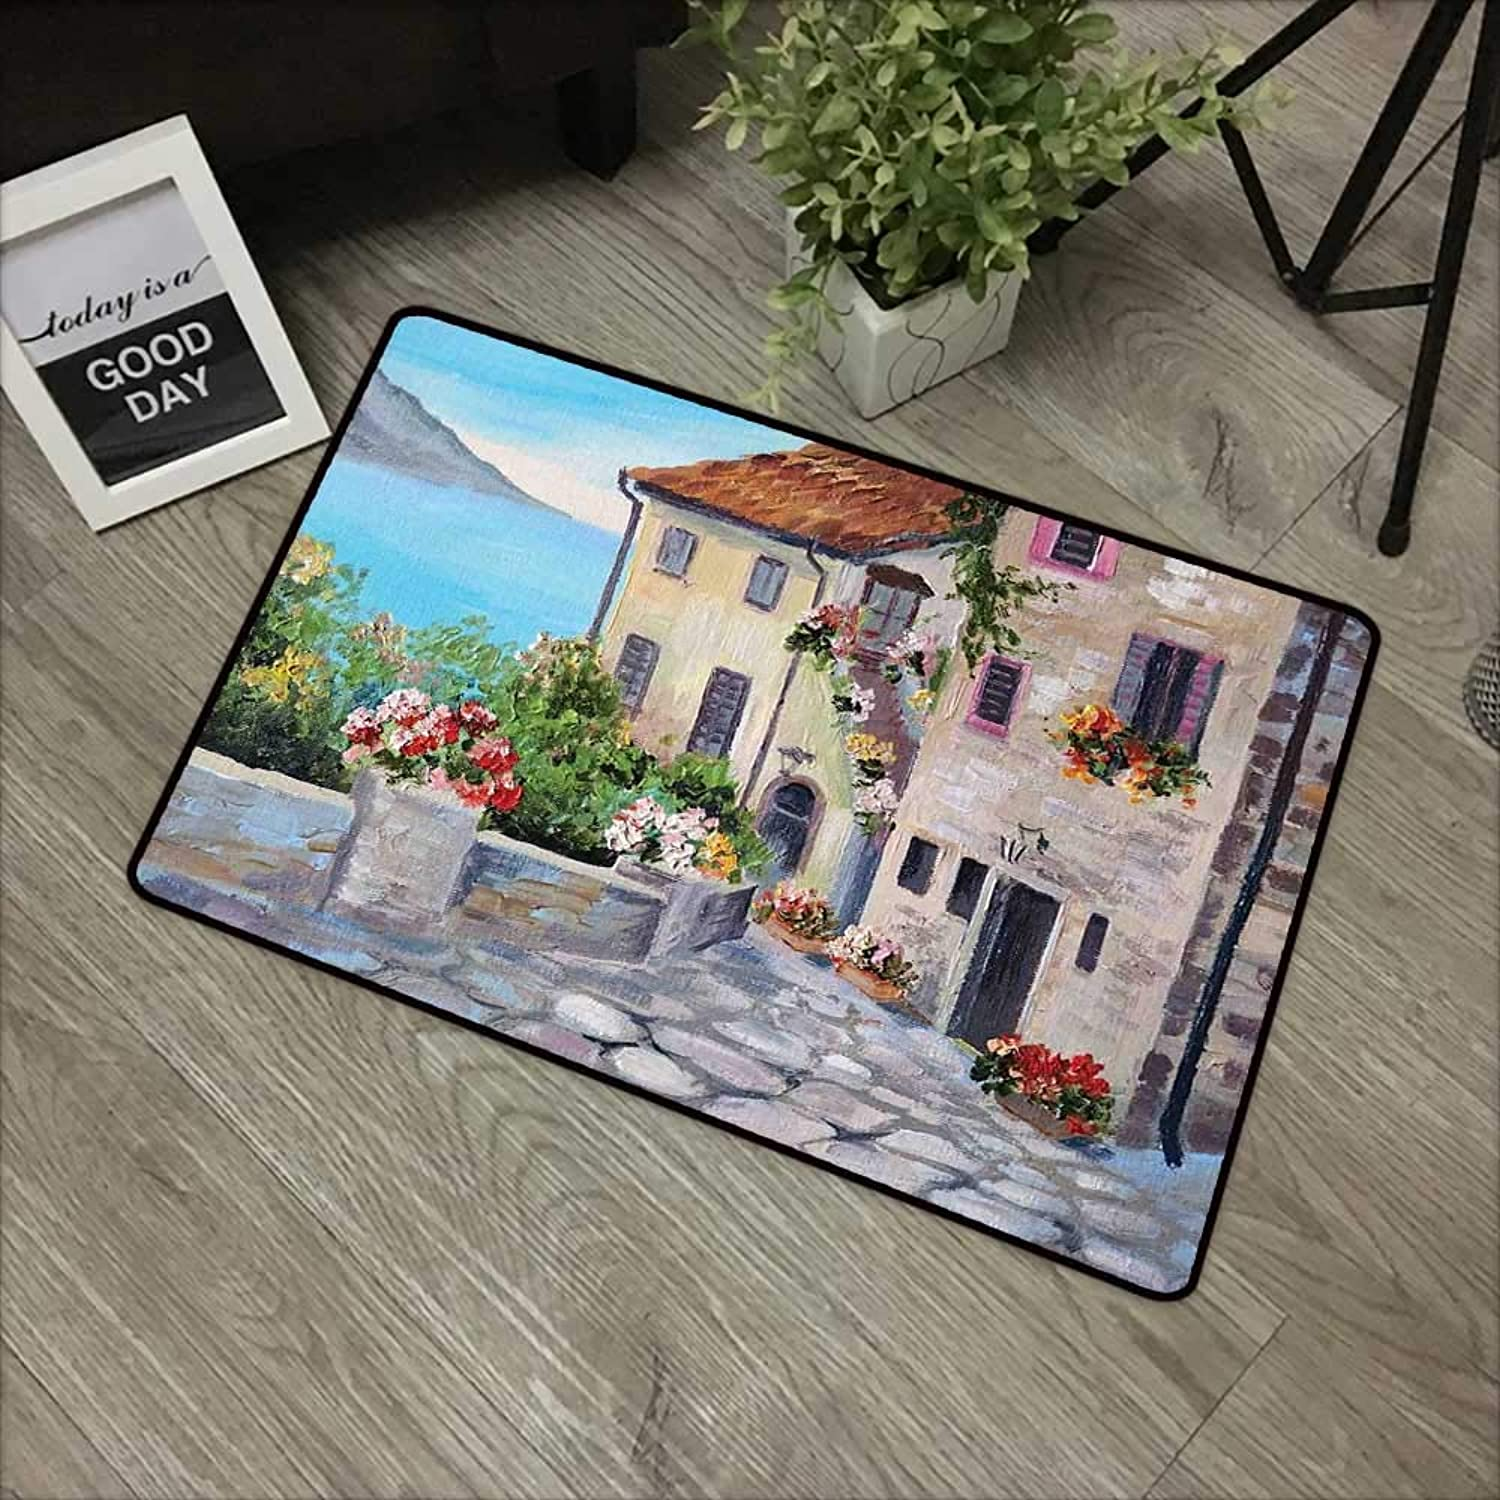 Bathroom Door mat W35 x L59 INCH Rustic,Old Houses in a Small Town Sea and Flower Pots at Windows Oil Painting Style,Beige Pale bluee Non-Slip, with Non-Slip Backing,Non-Slip Door Mat Carpet